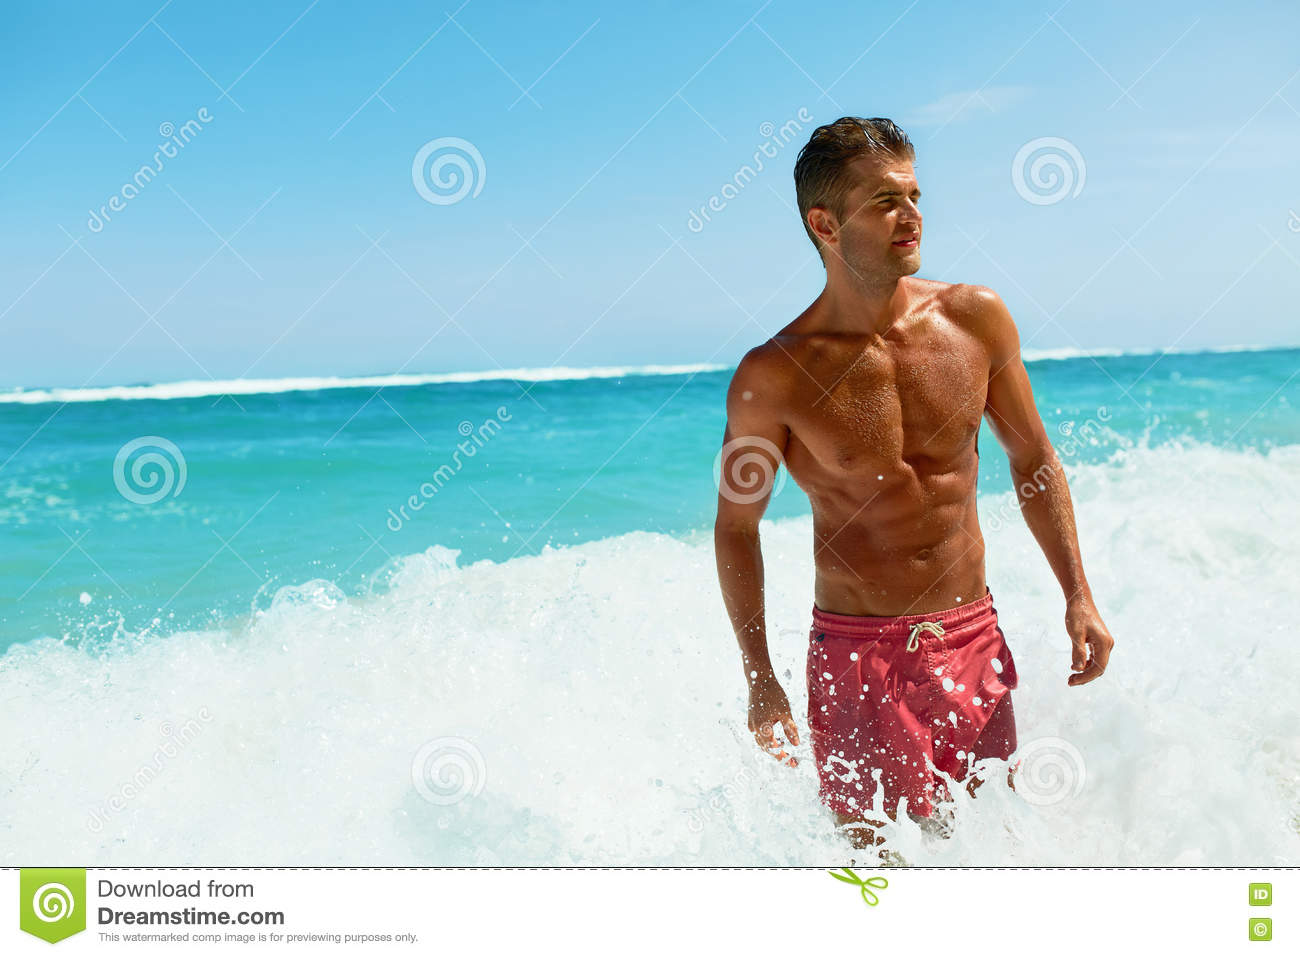 Marvelous Man On Beach In Summer. Male Relaxing Near Sea. Healthy, Coming.